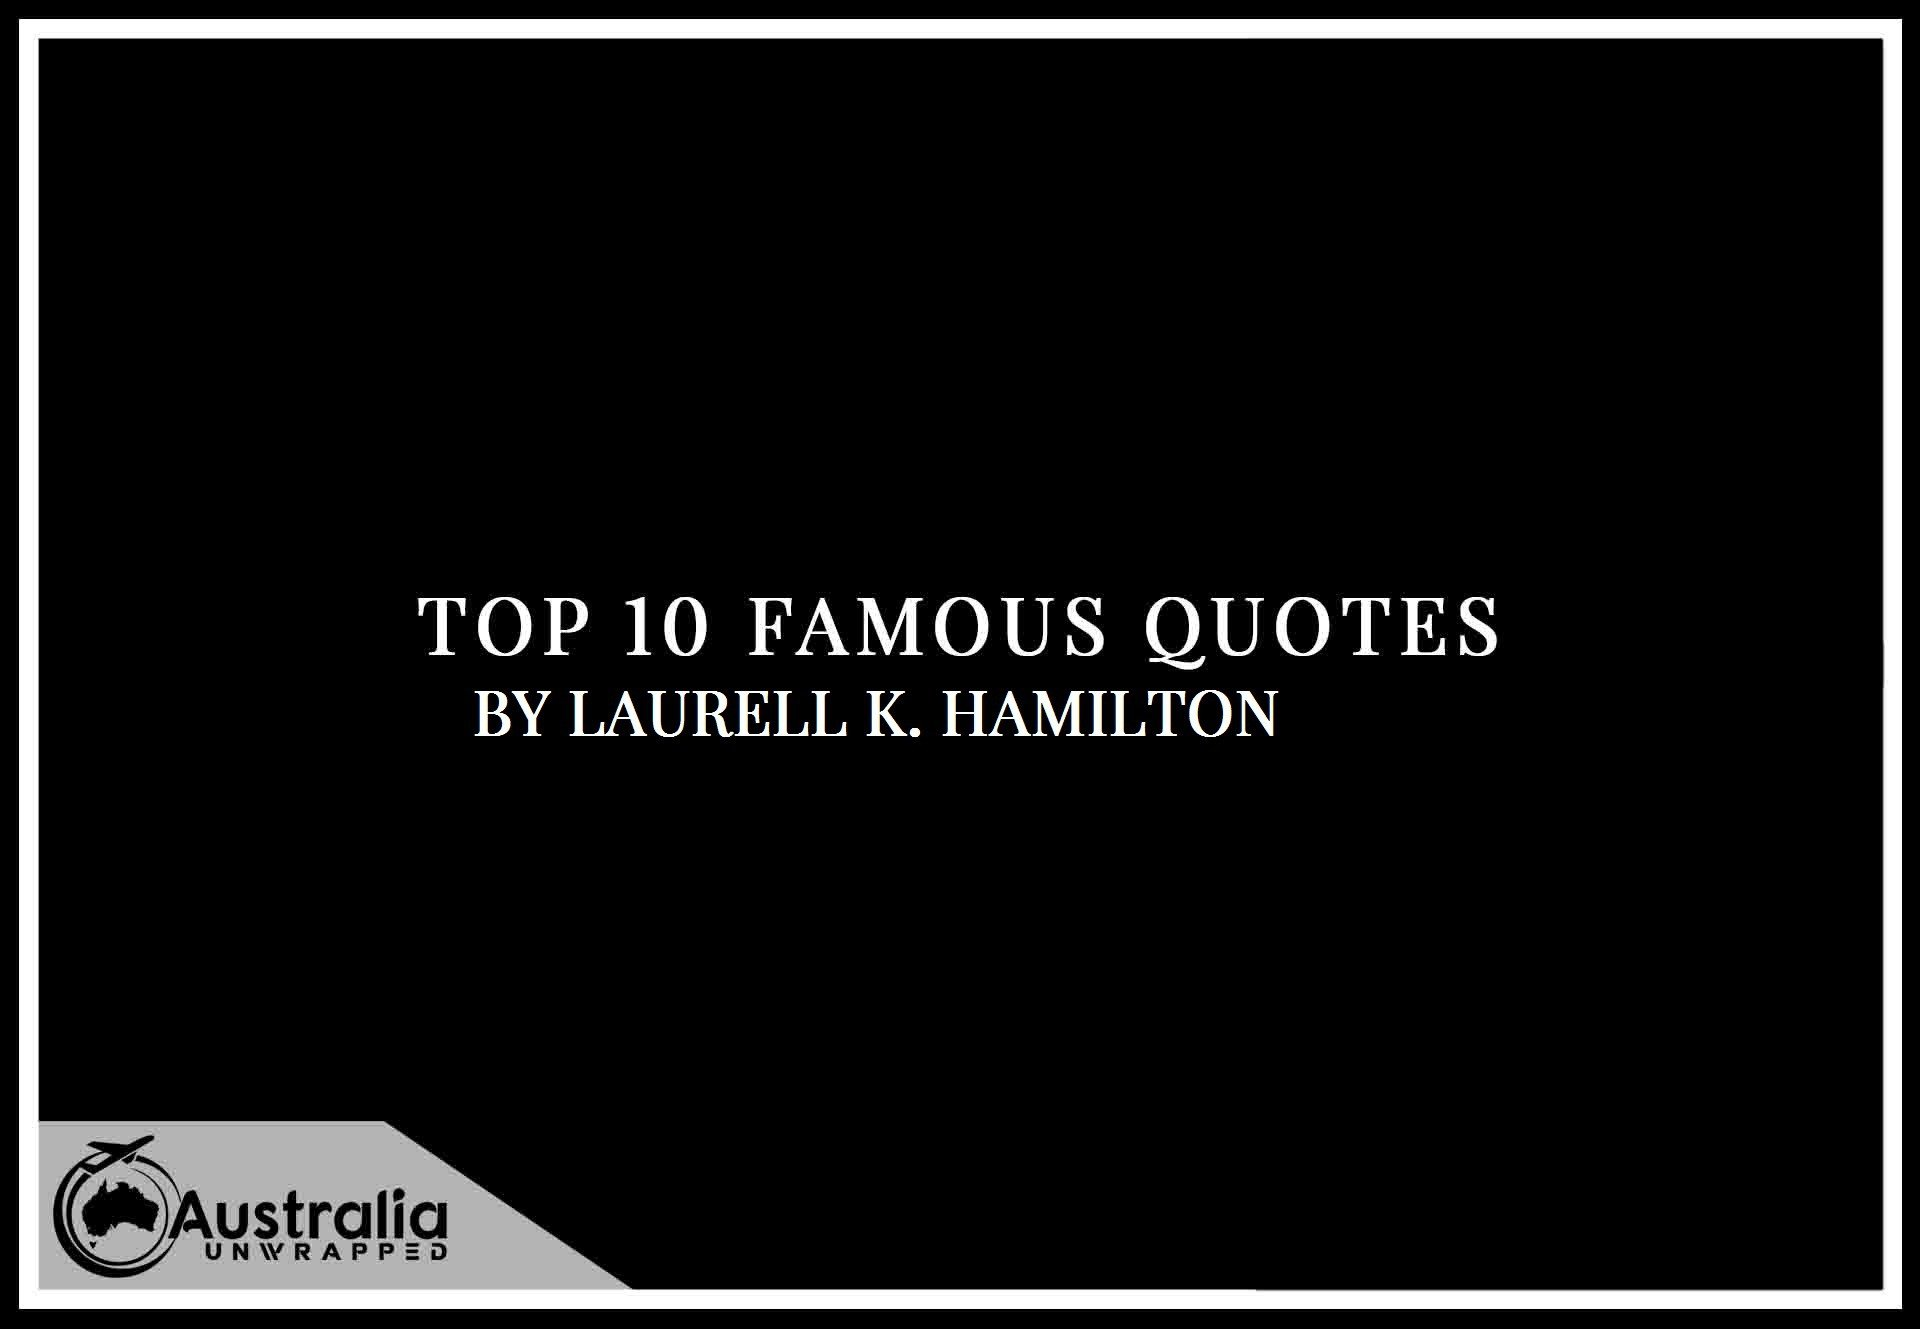 Laurell K. Hamilton's Top 10 Popular and Famous Quotes